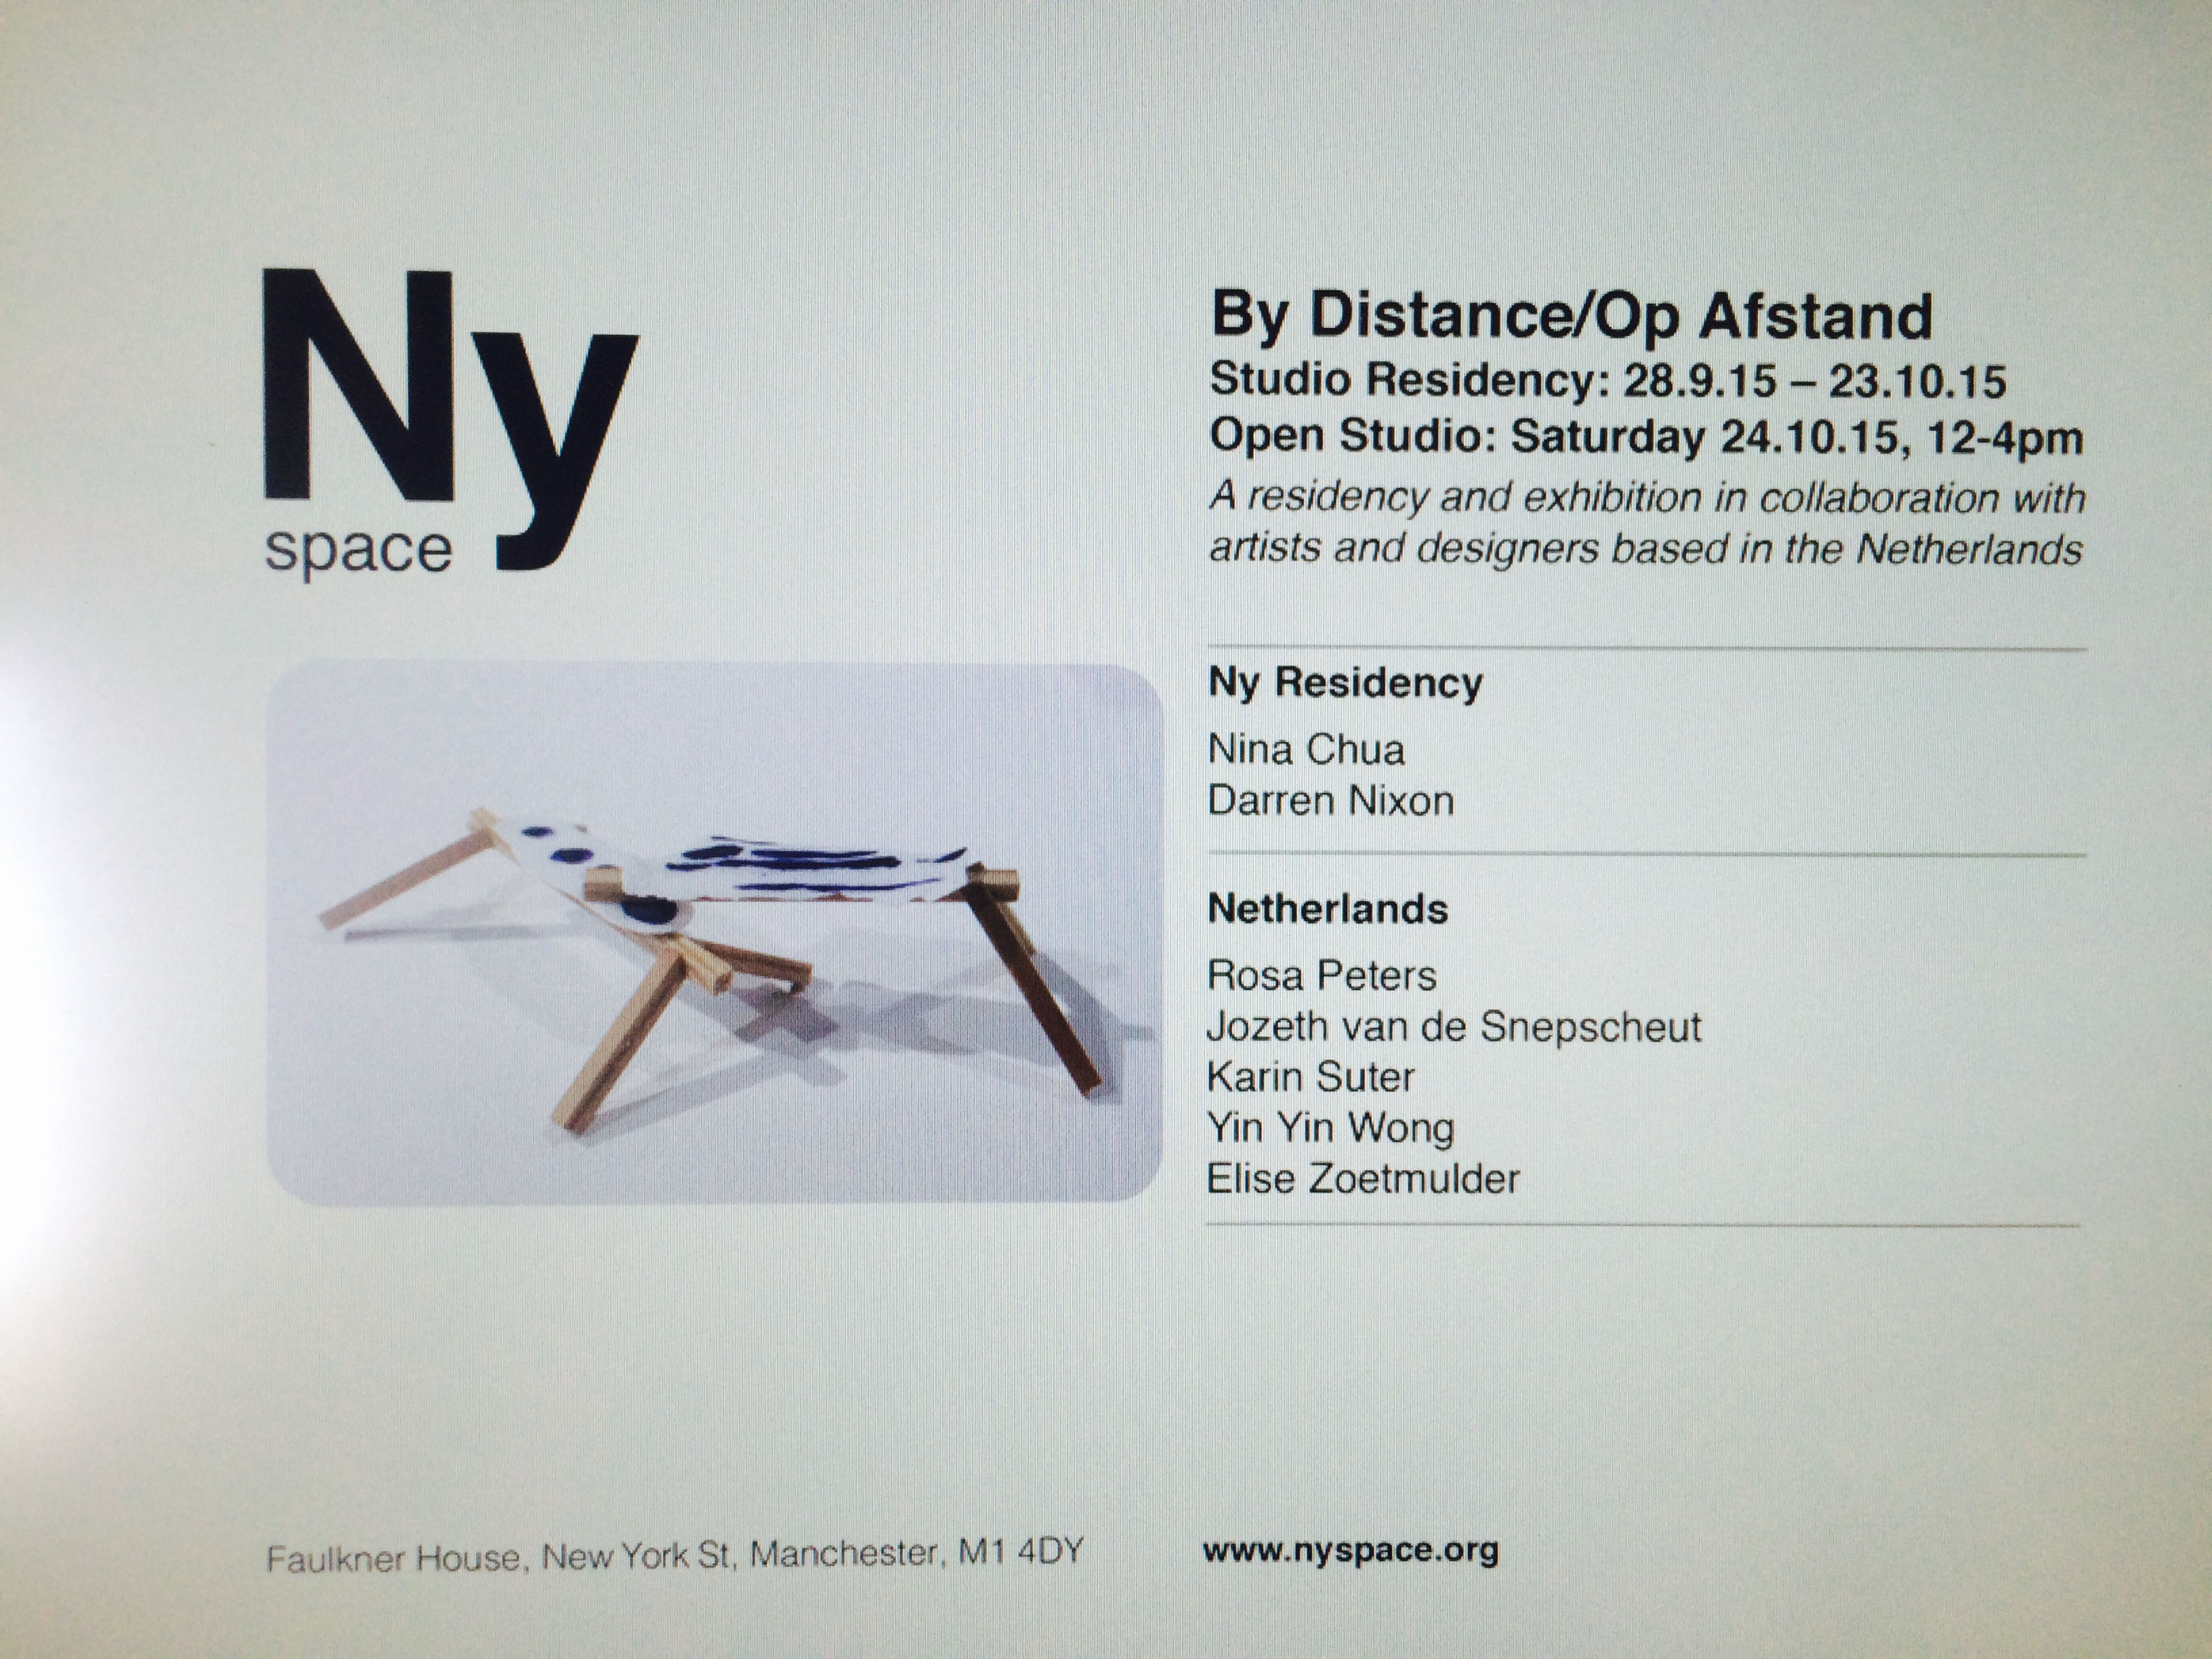 NY space manchester by distance